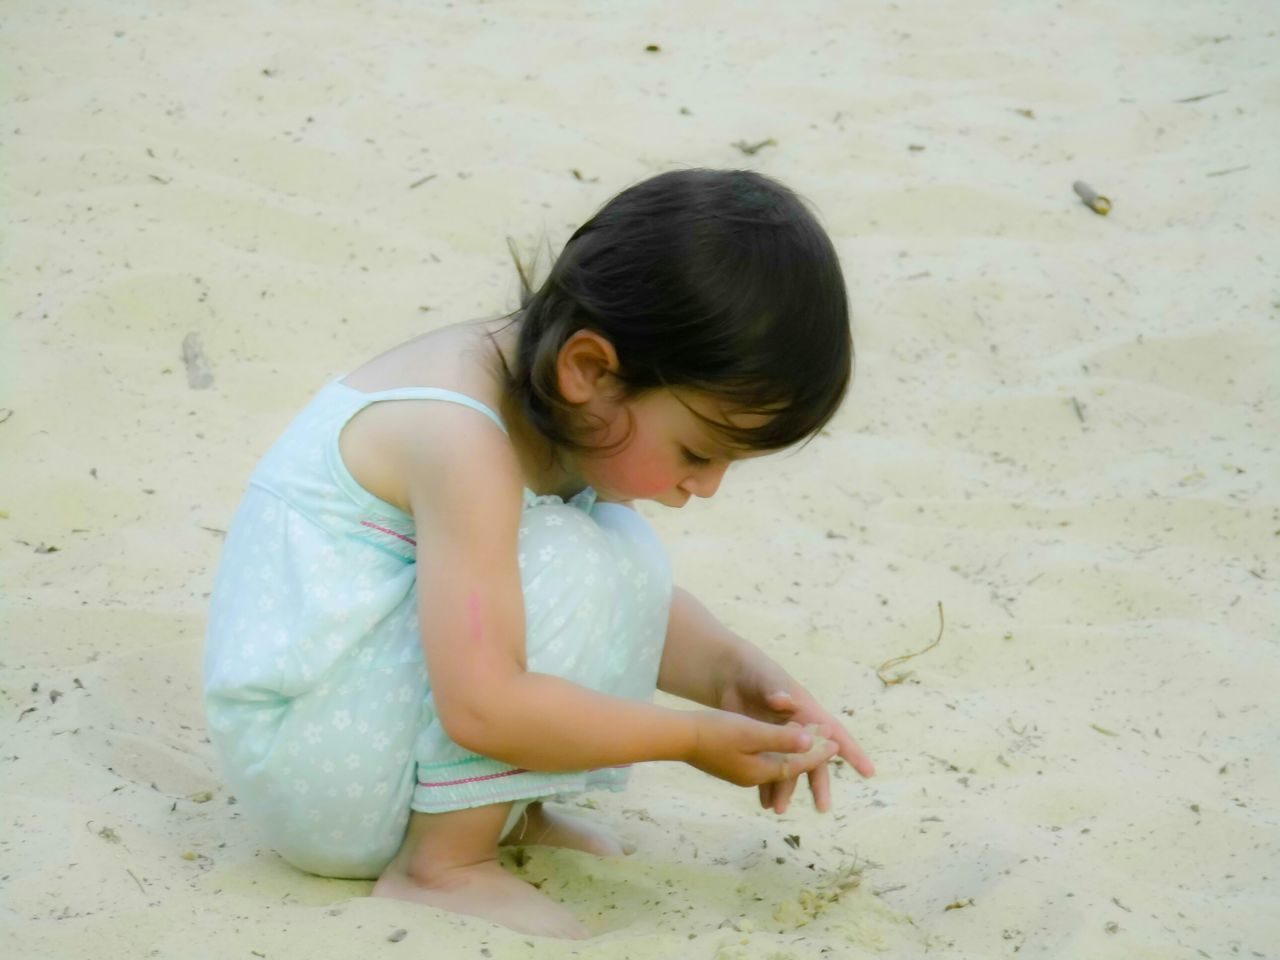 Kid Sand The Portraitist - 2015 EyeEm Awards Color Portrait Candid Portraits Romantic Portrait Of Innocence Portrait Of A Child Summer Views Everyday Emotion The Essence Of Summer